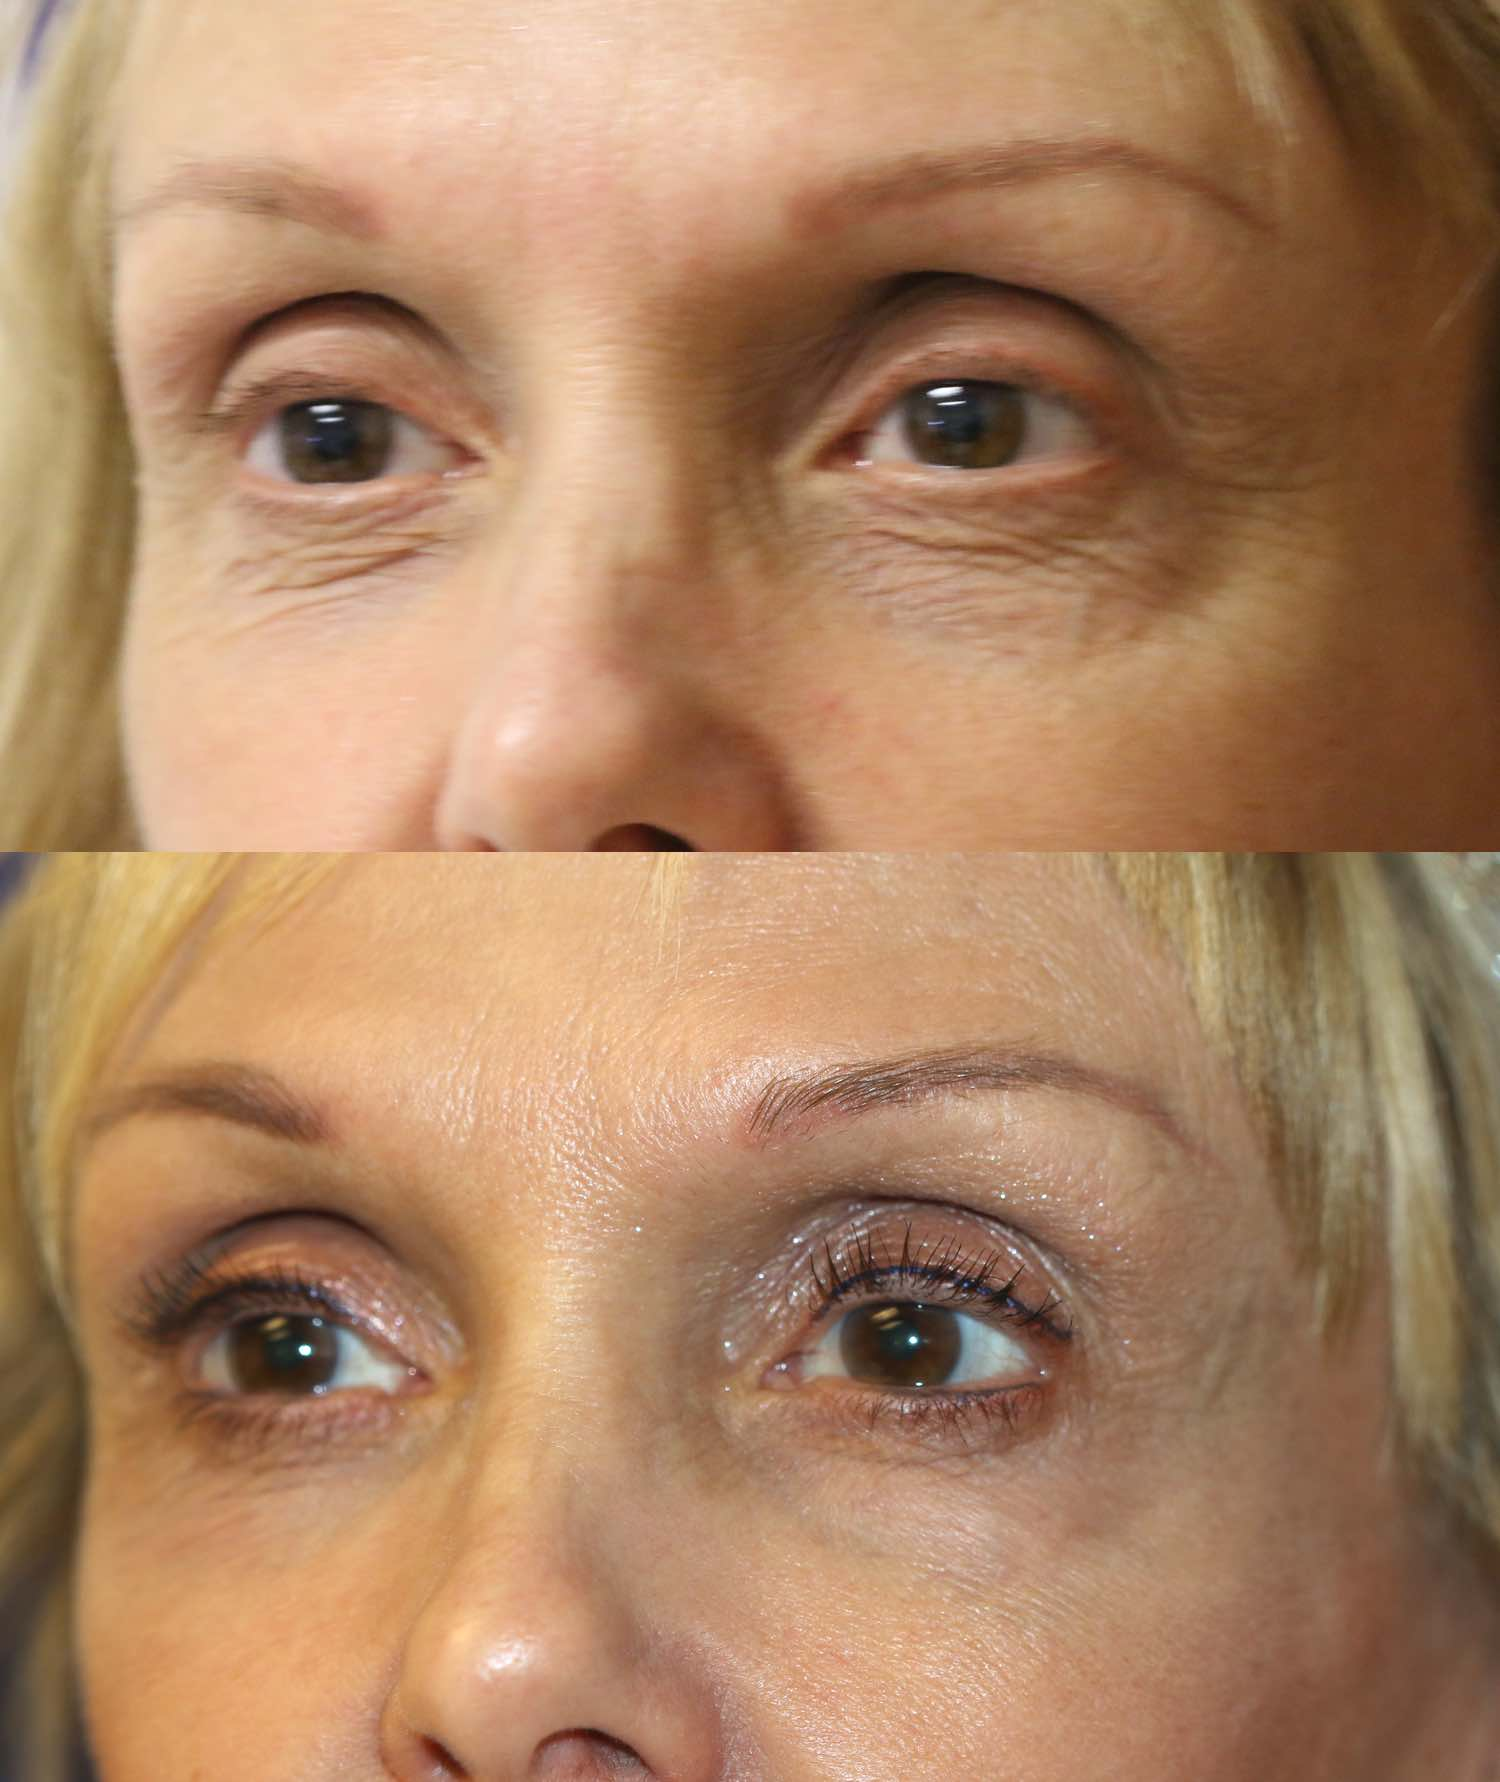 englishsurgeon.com. Photos show the improvement that can be achieved in lower eyelid wrinkles and hollows with fillers and lasers